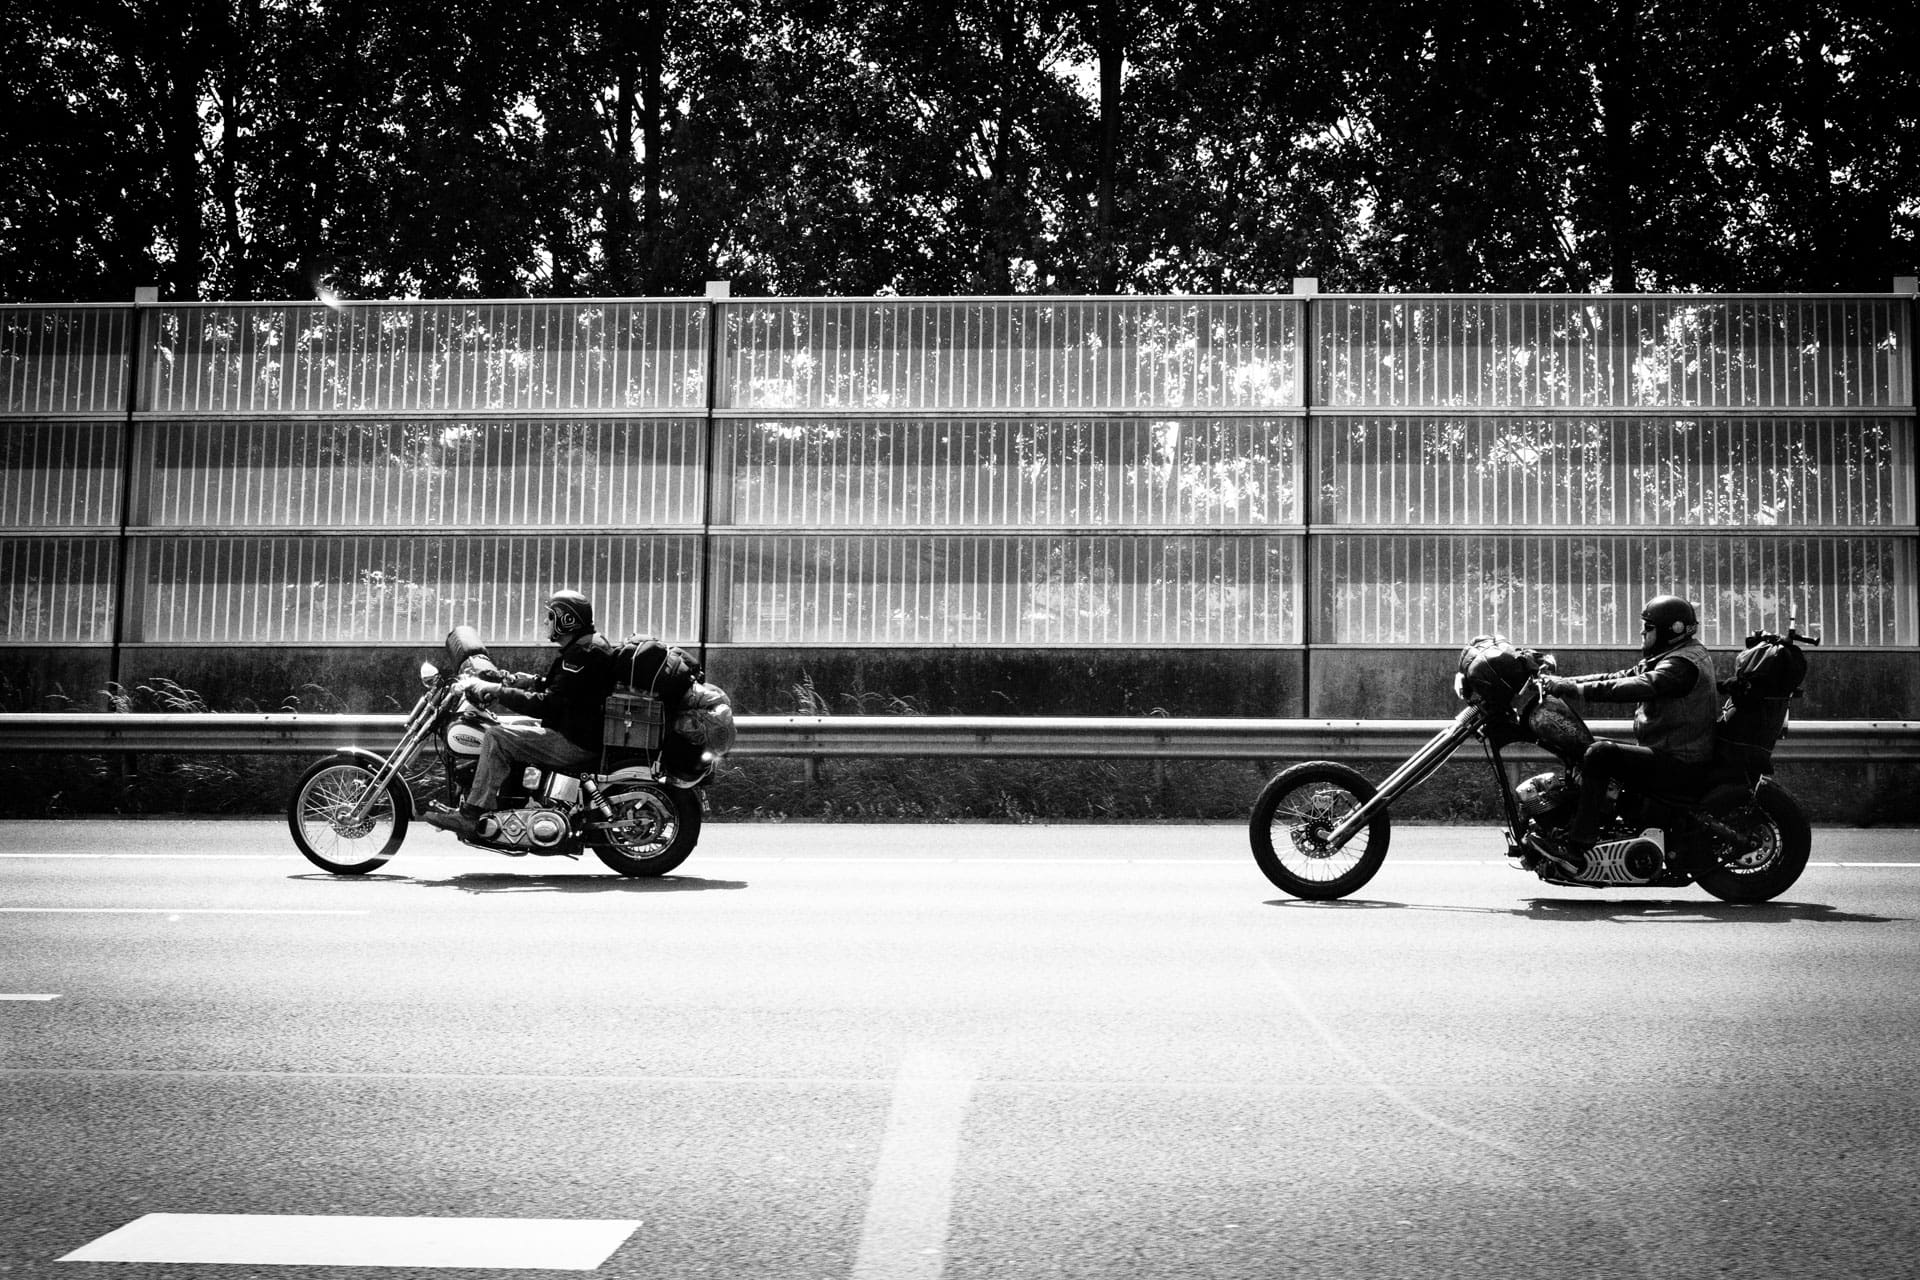 Epic Road Trip on a Motorcycle Daily Observations Street Photography